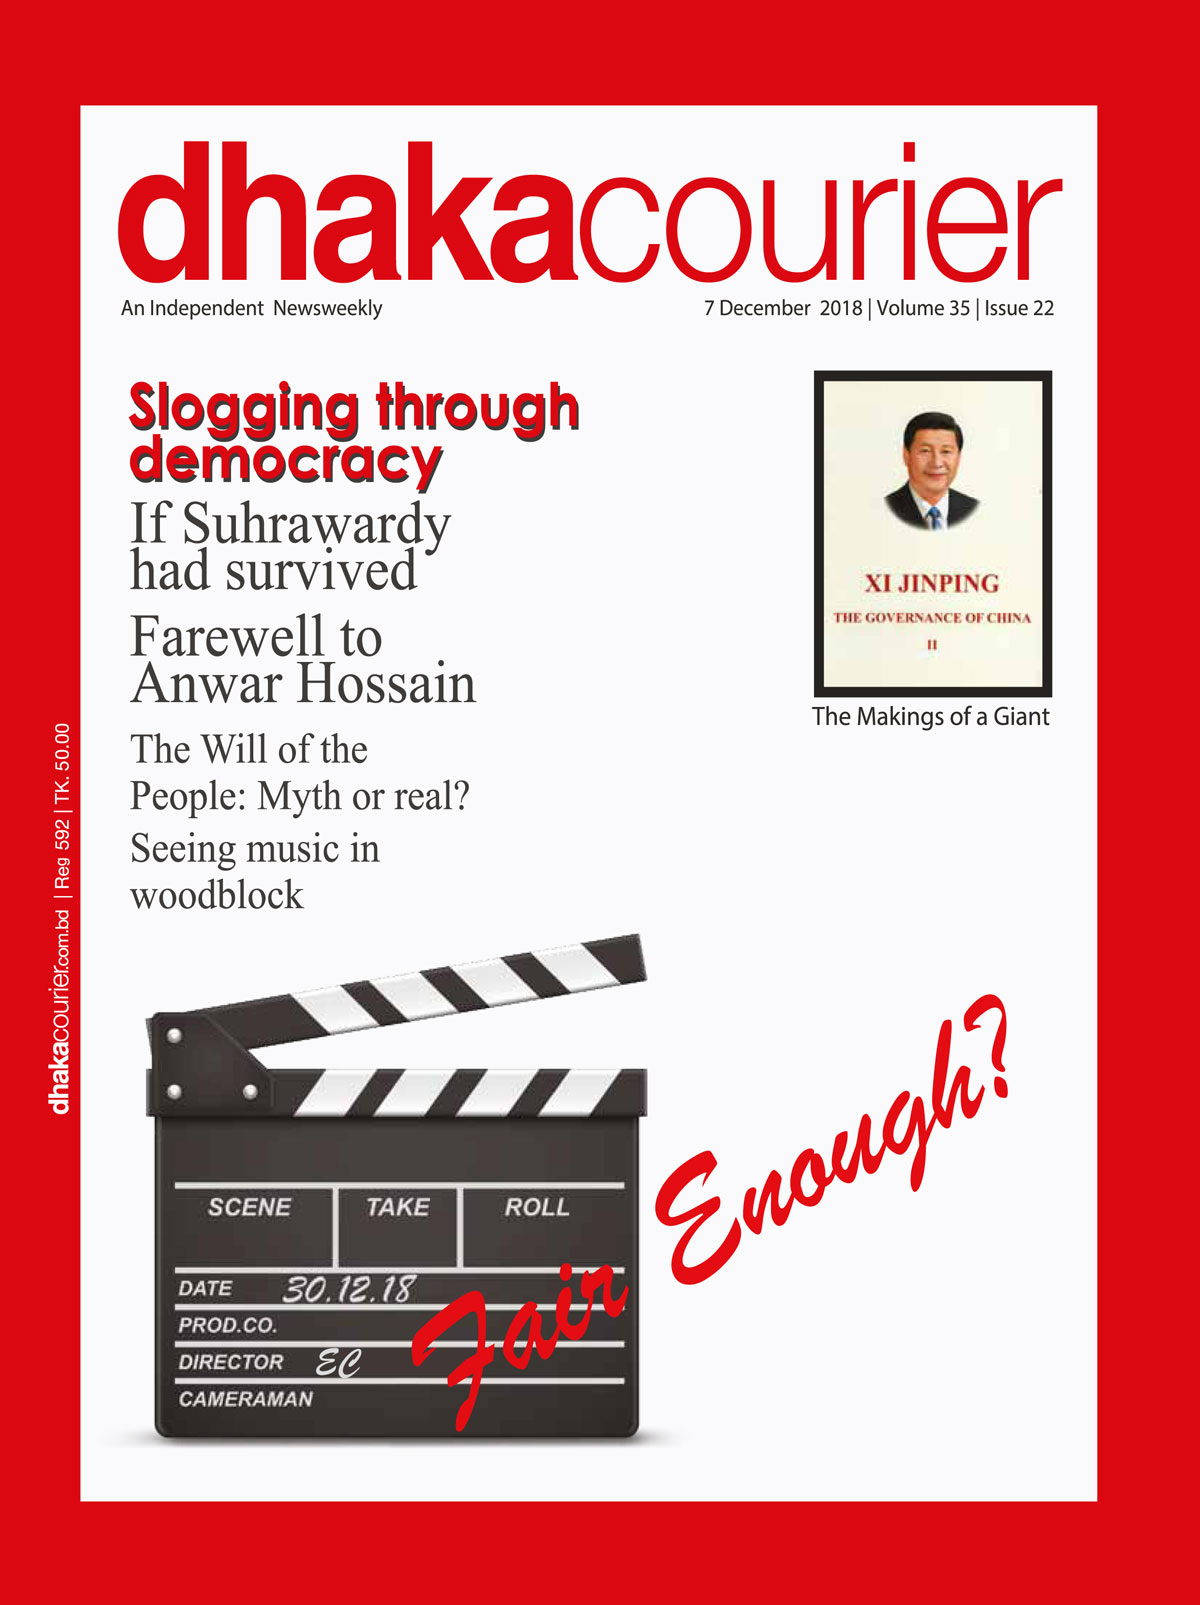 DhakaCourier Vol 35 Issue 22